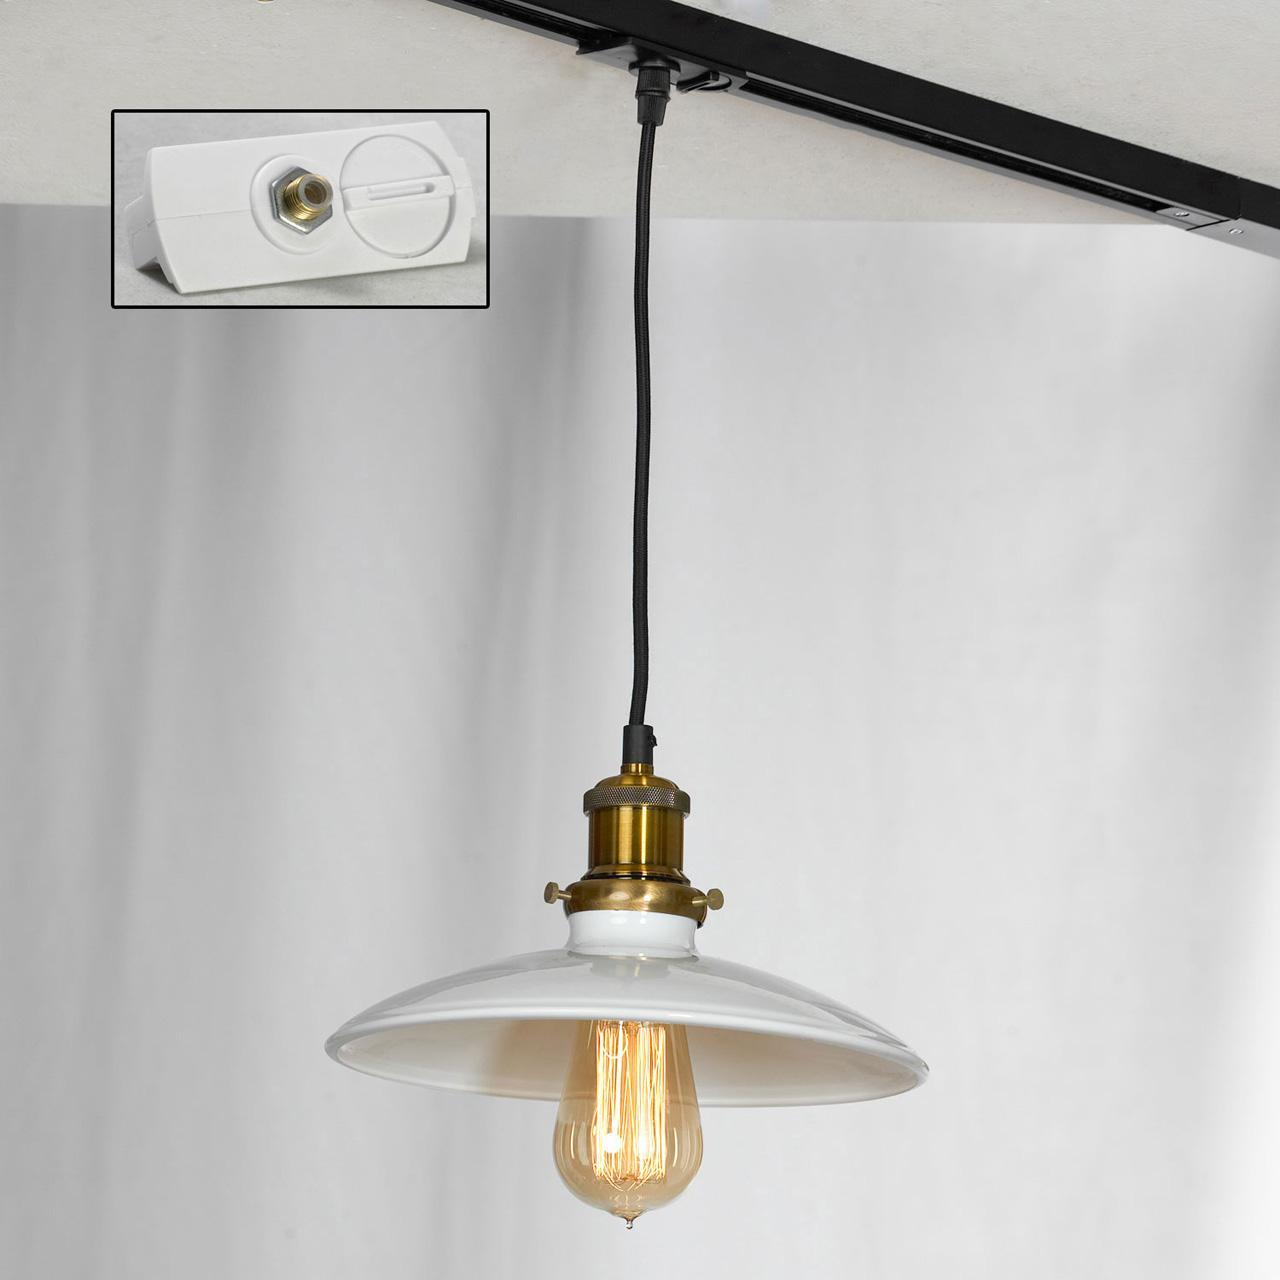 Трековый светильник однофазный Lussole LOFT Track Lights LSP-9605-TAW edison bulb loft style vintage pendant industrial light lamp with 3 lights for dining room